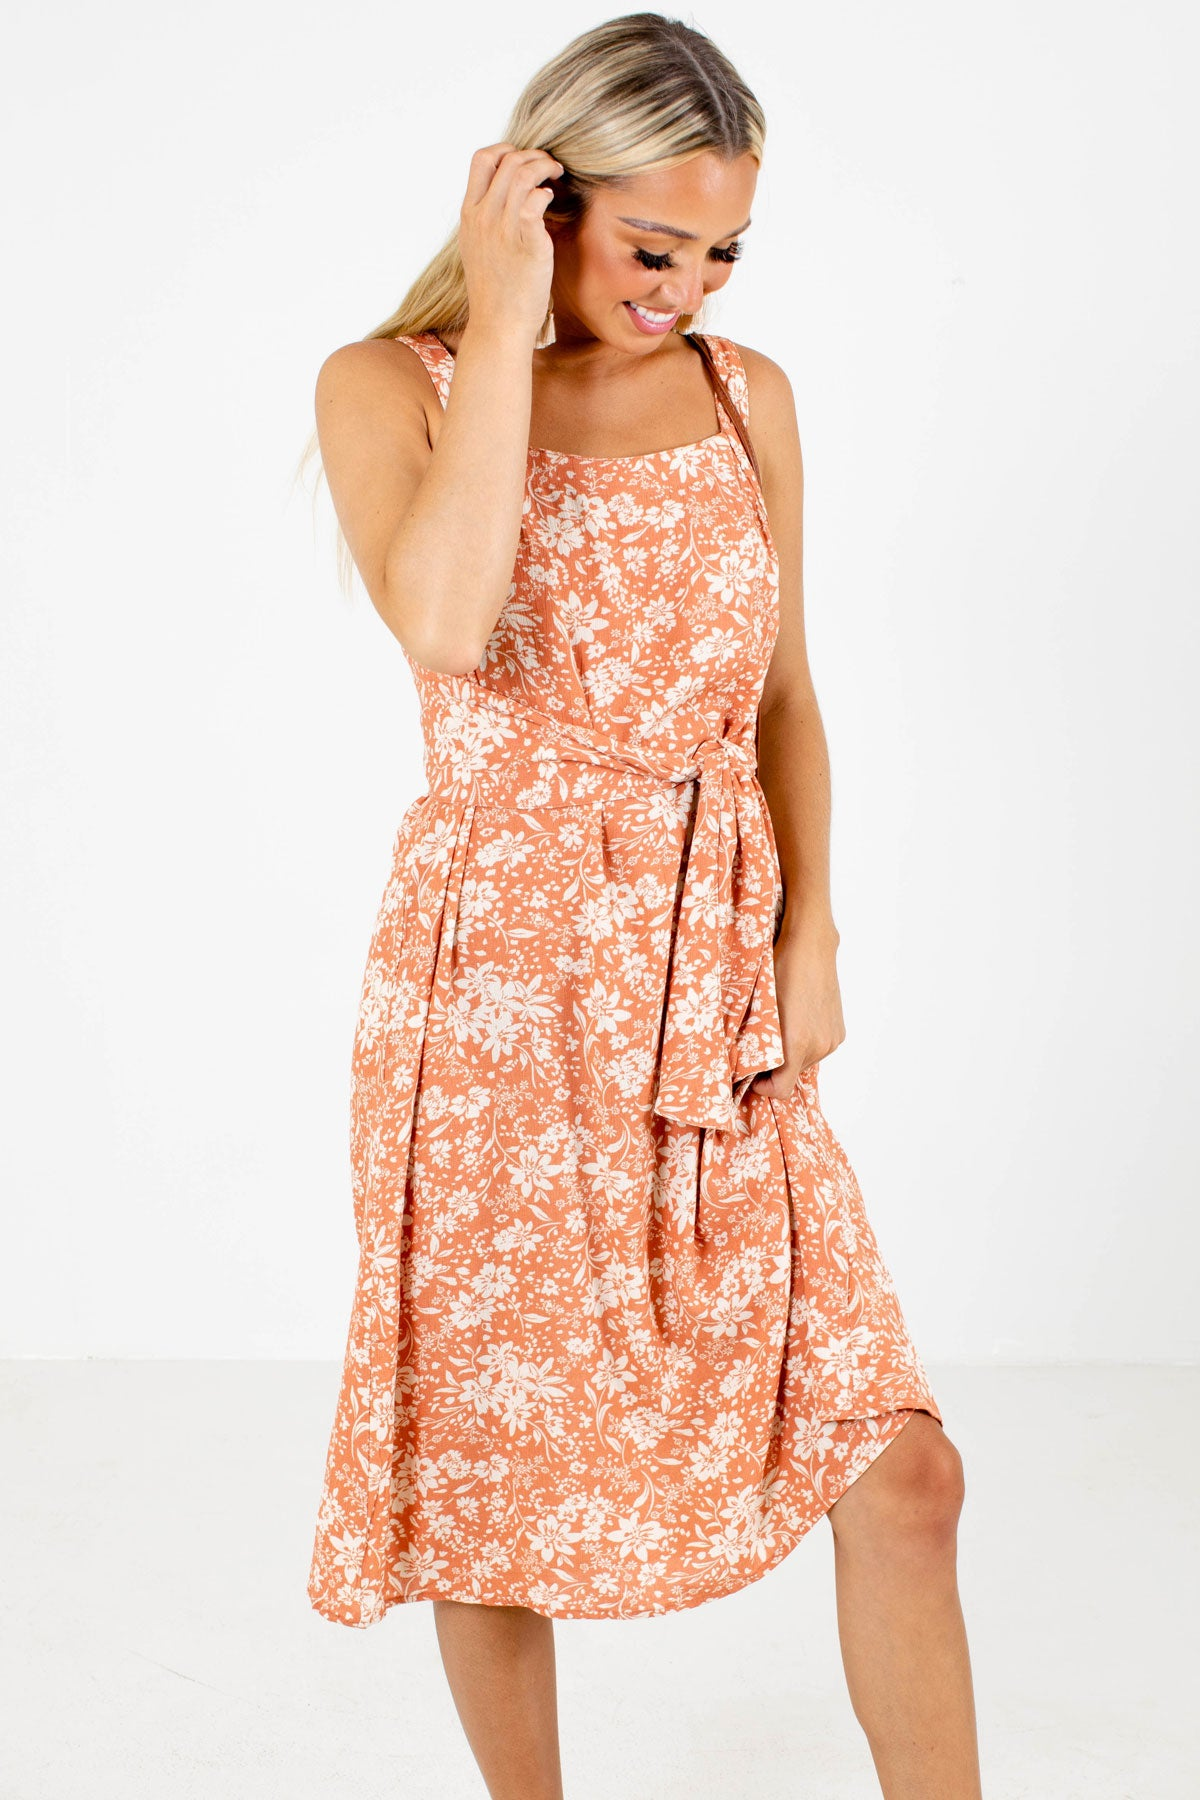 Peach Pink and Cream Floral Patterned Boutique Midi Dress